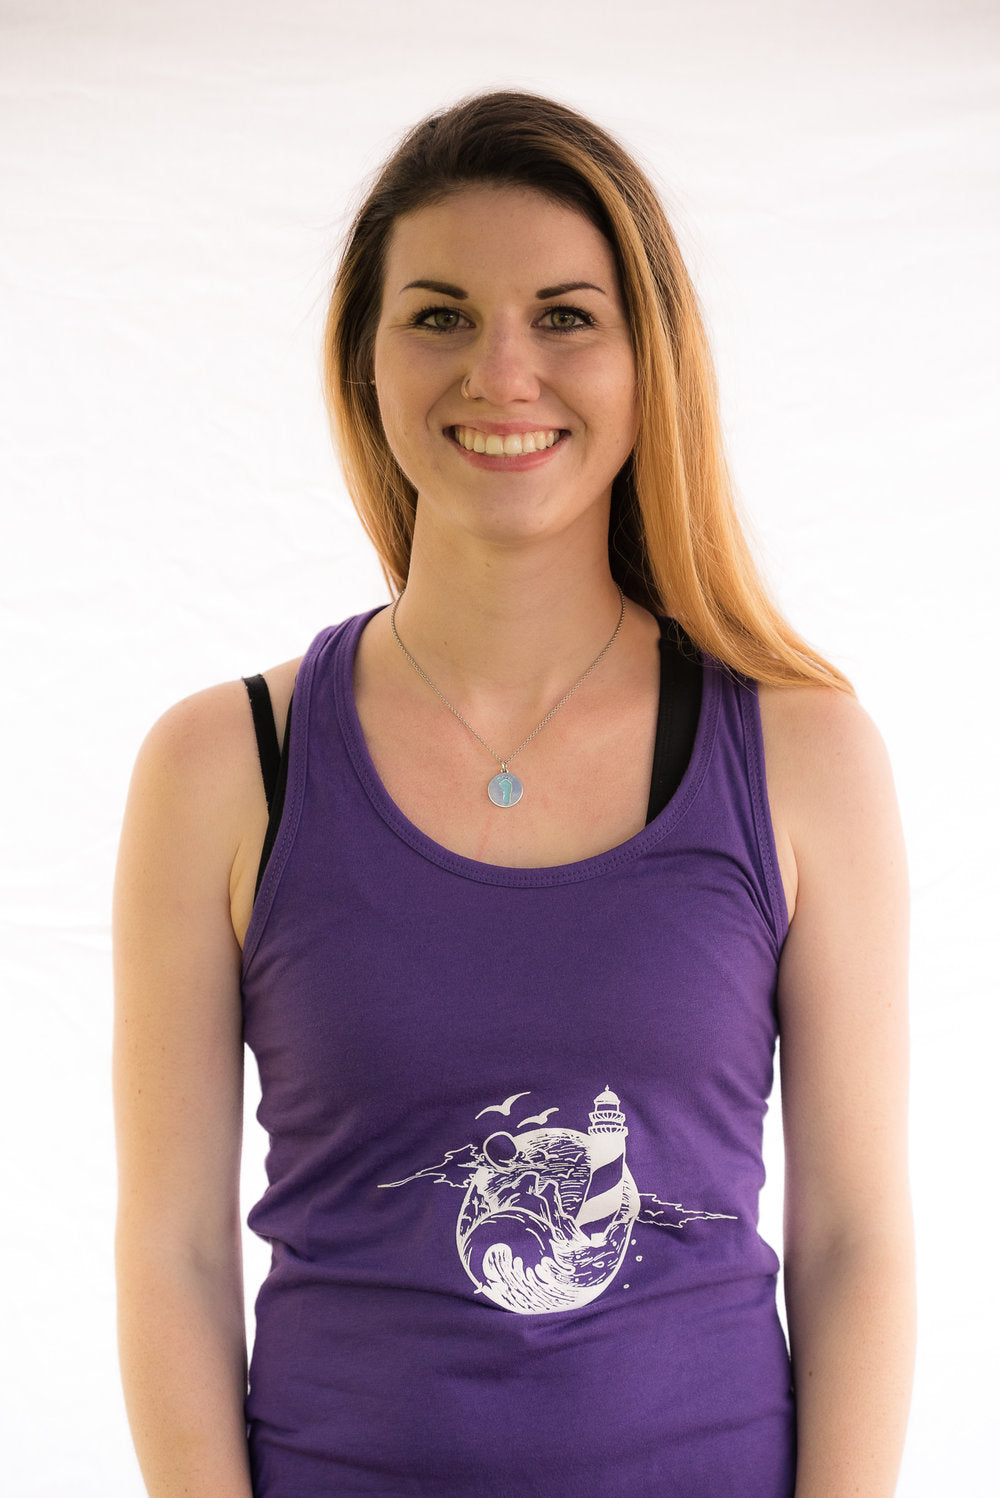 SeaScape Racer Back Ladies Tank